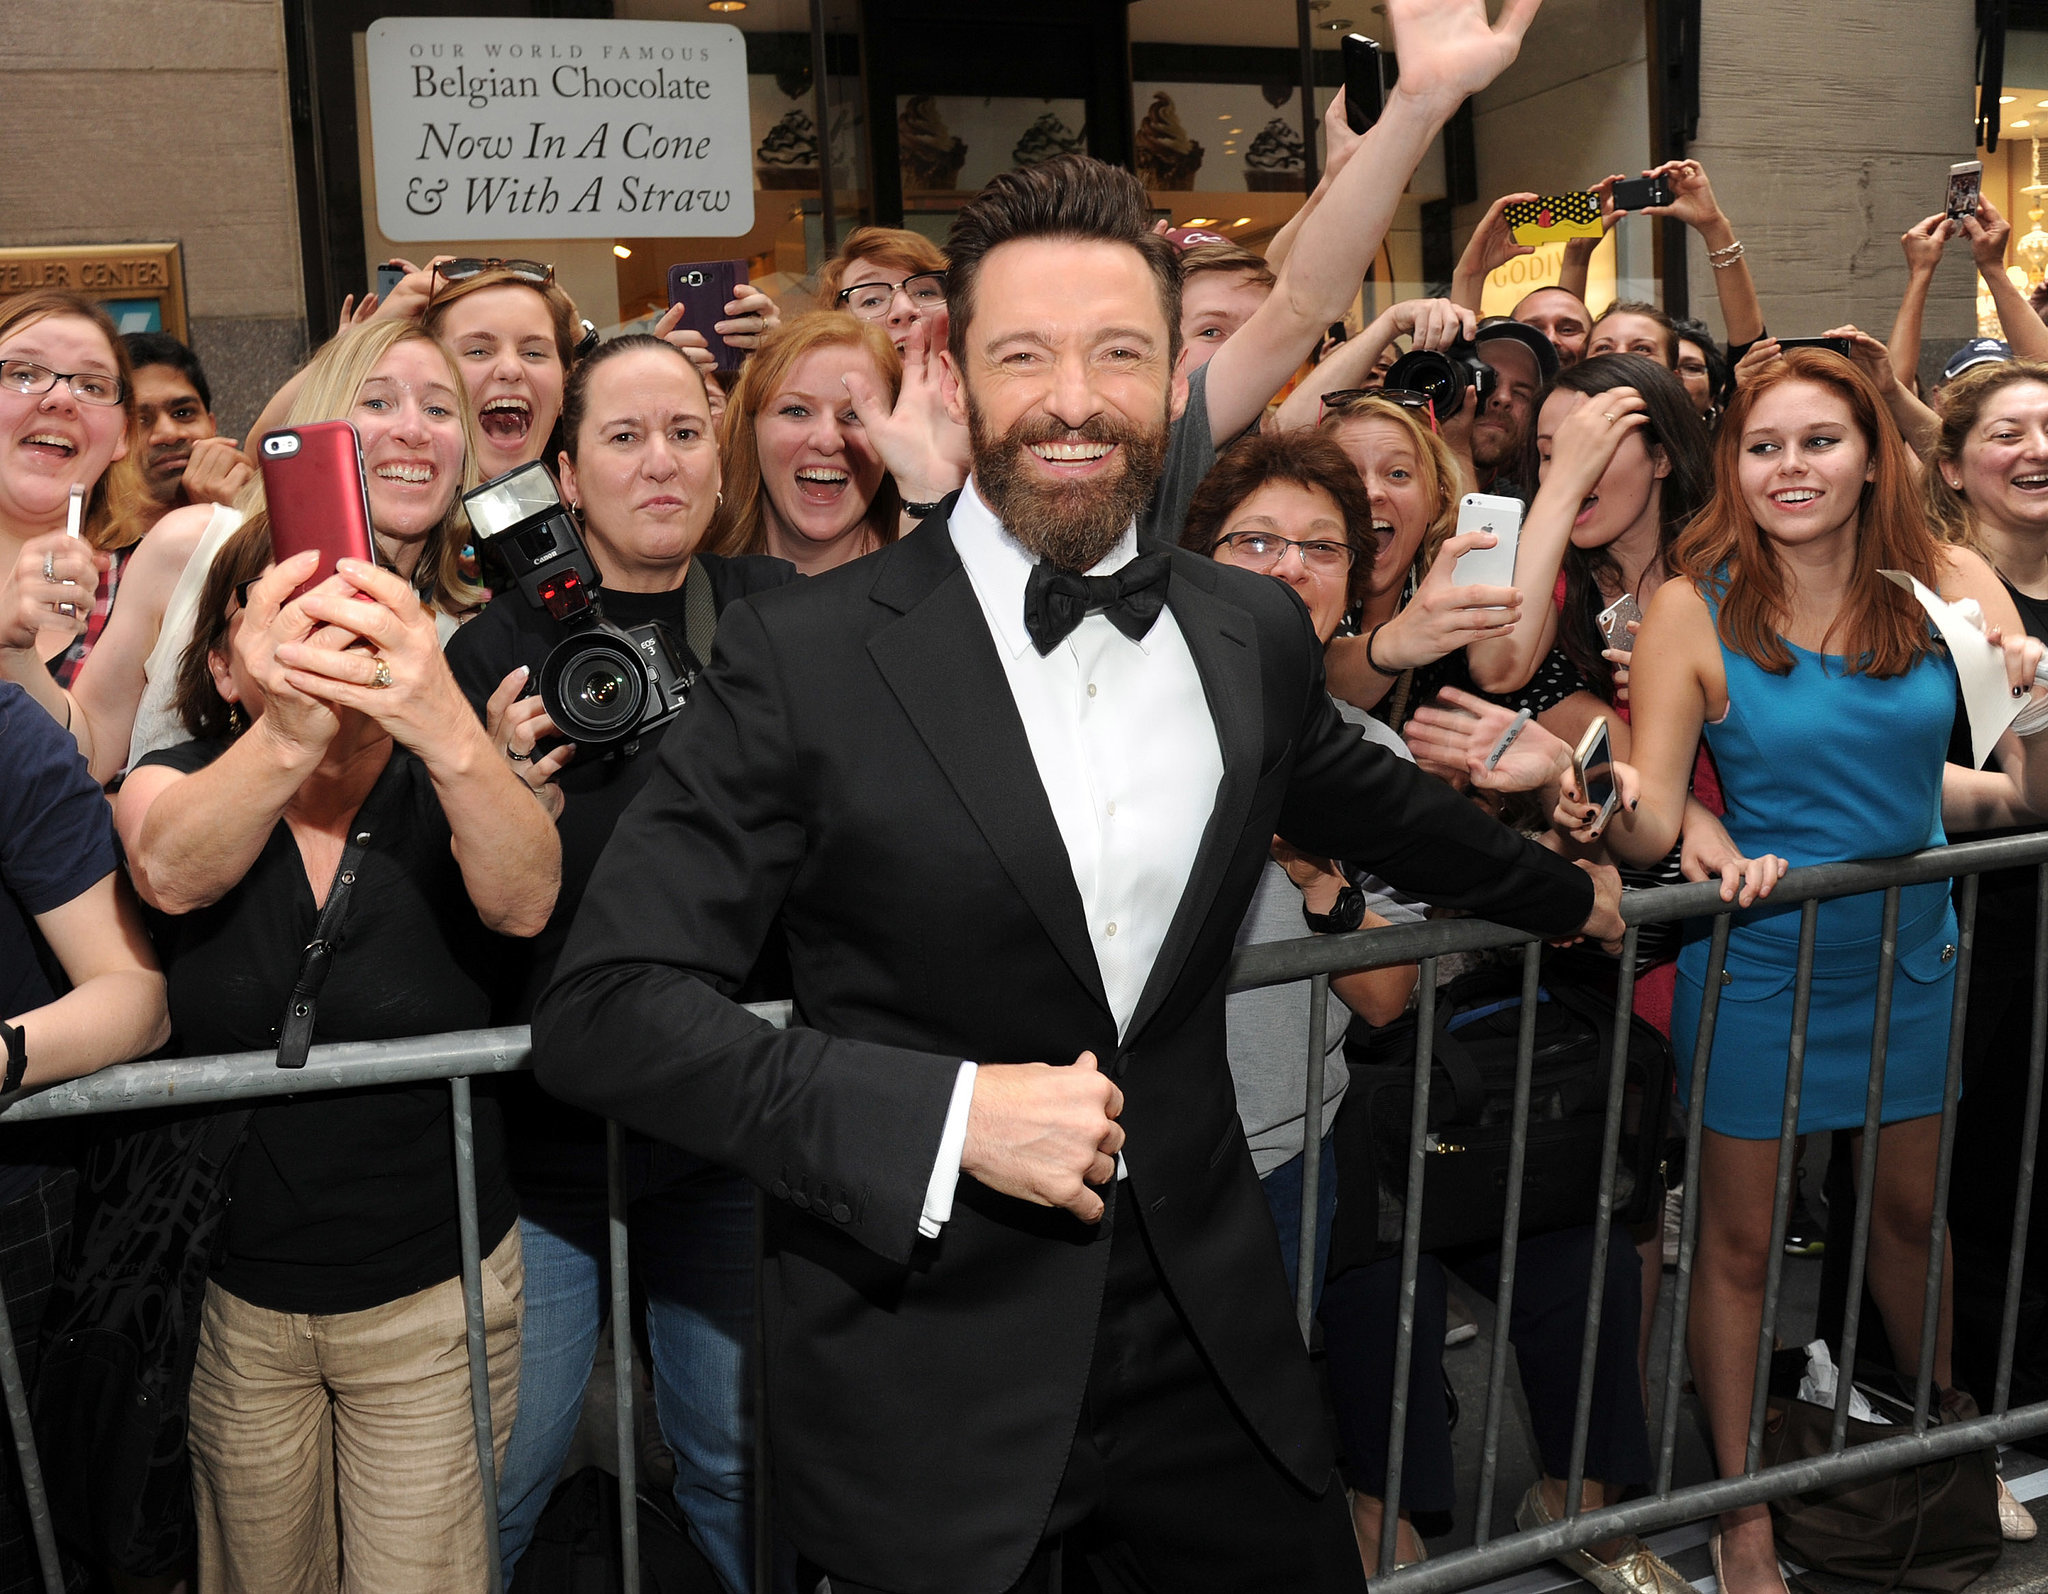 Hugh Jackman greeted fans before heading into the theater.